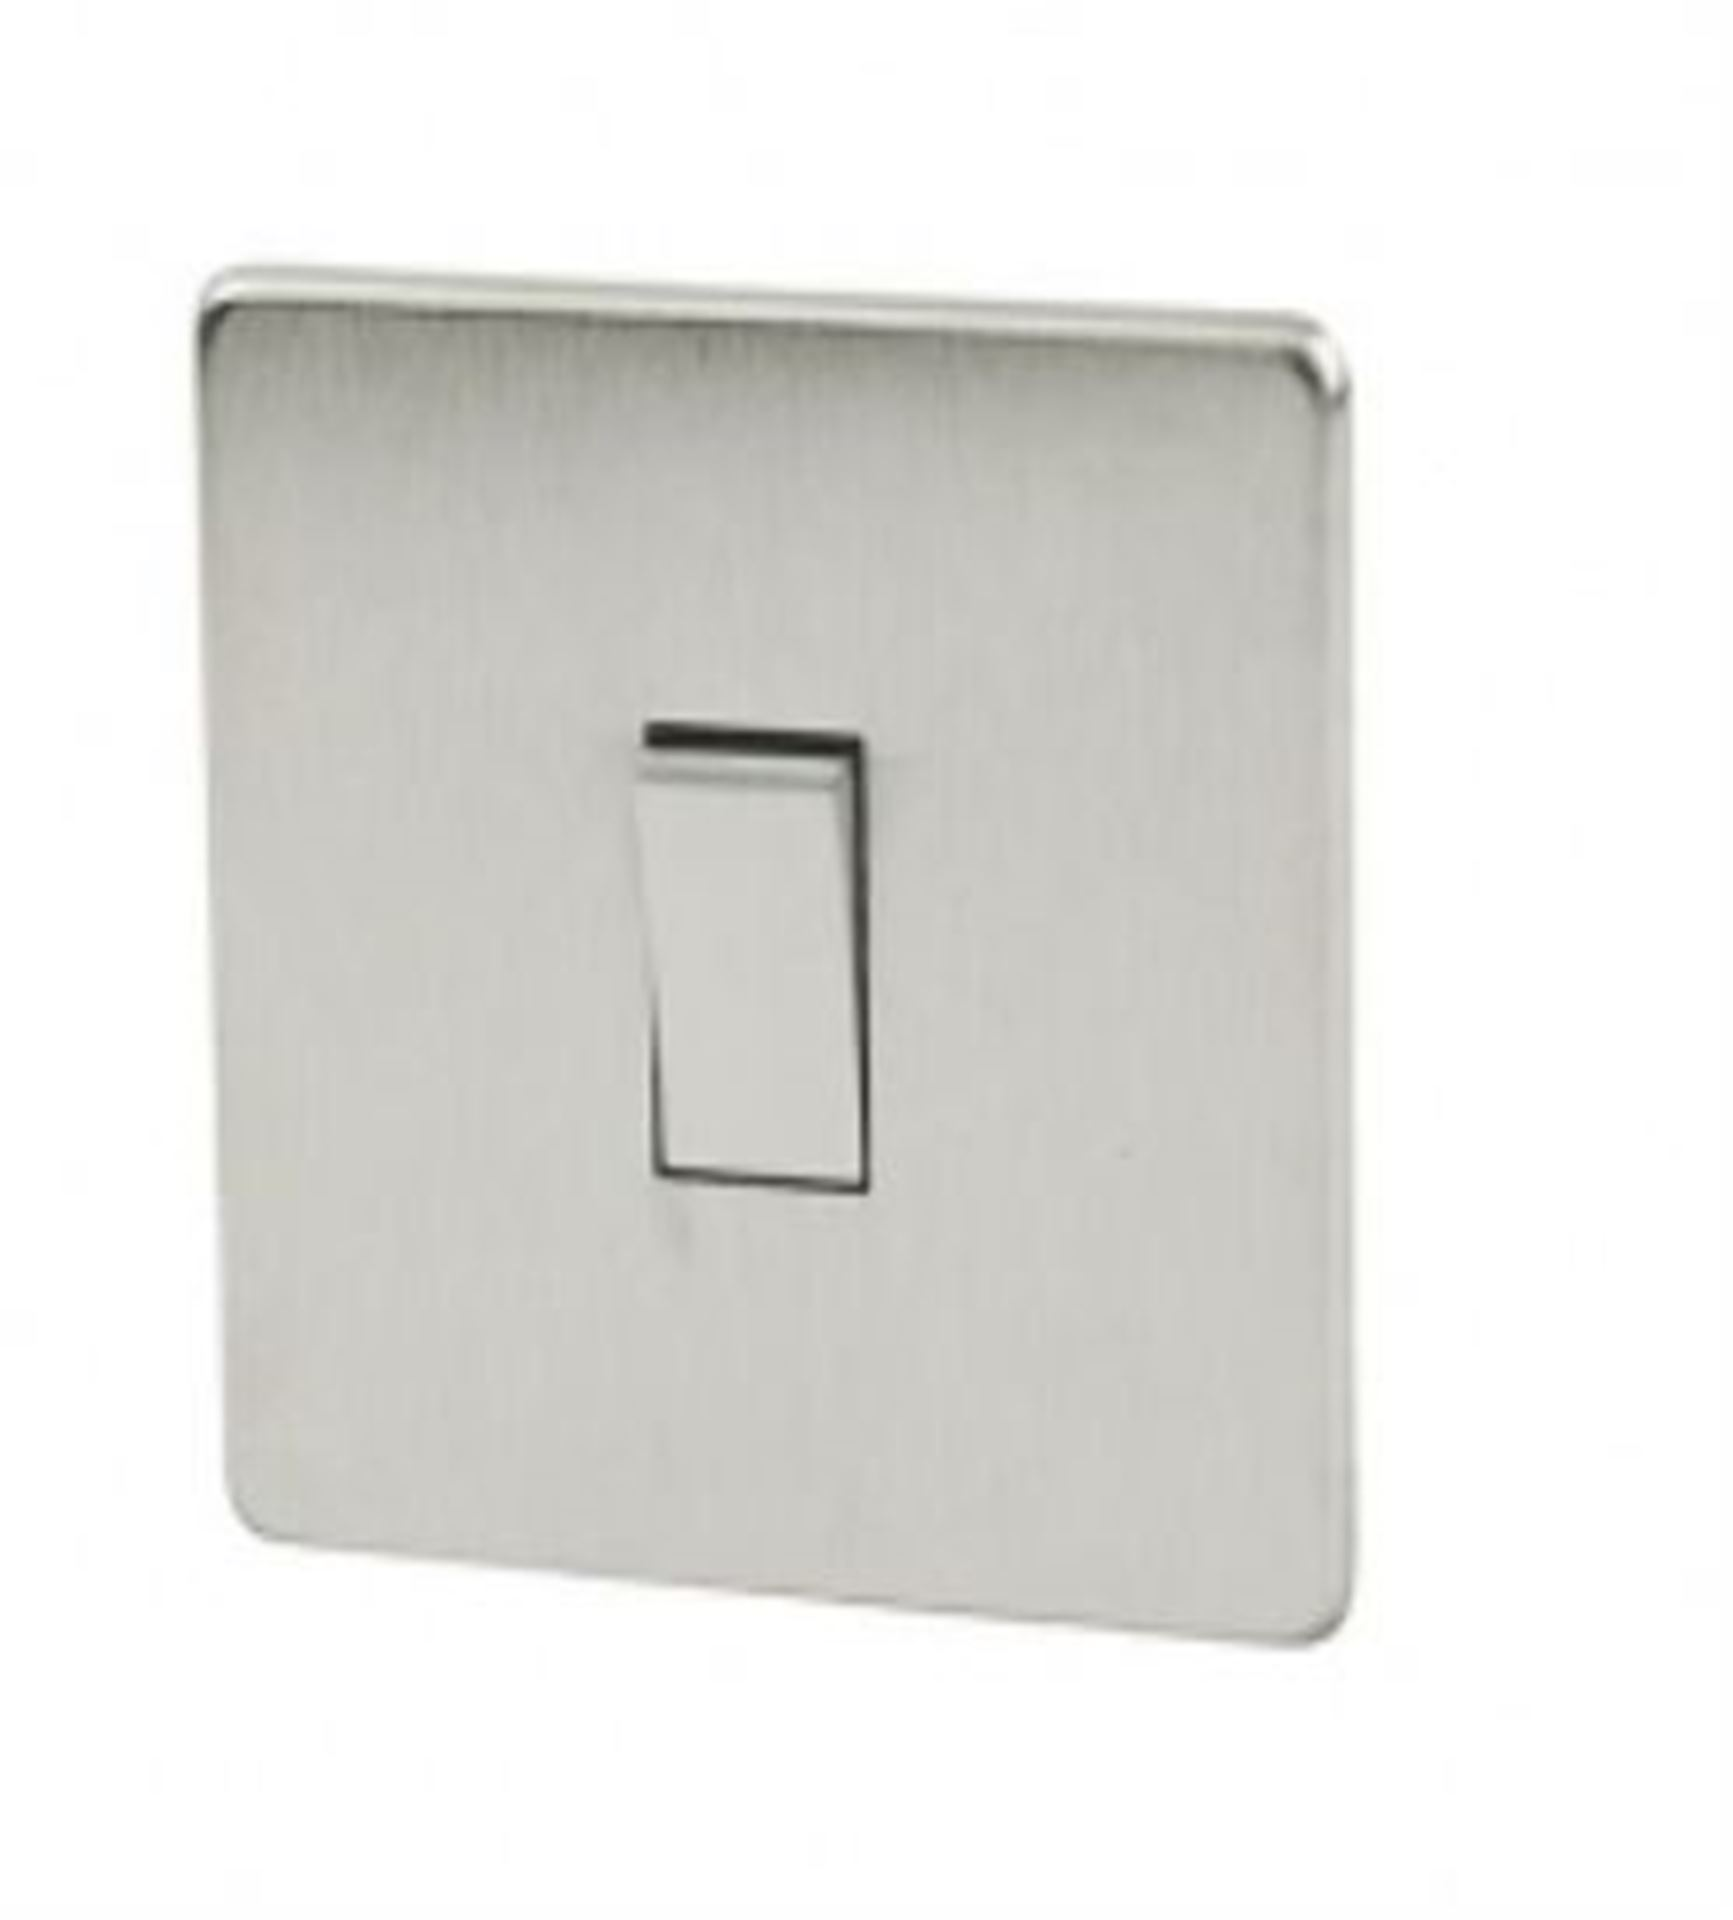 Crabtree Platinum Satin Chrome Intermediate Light Switch 7175/SC